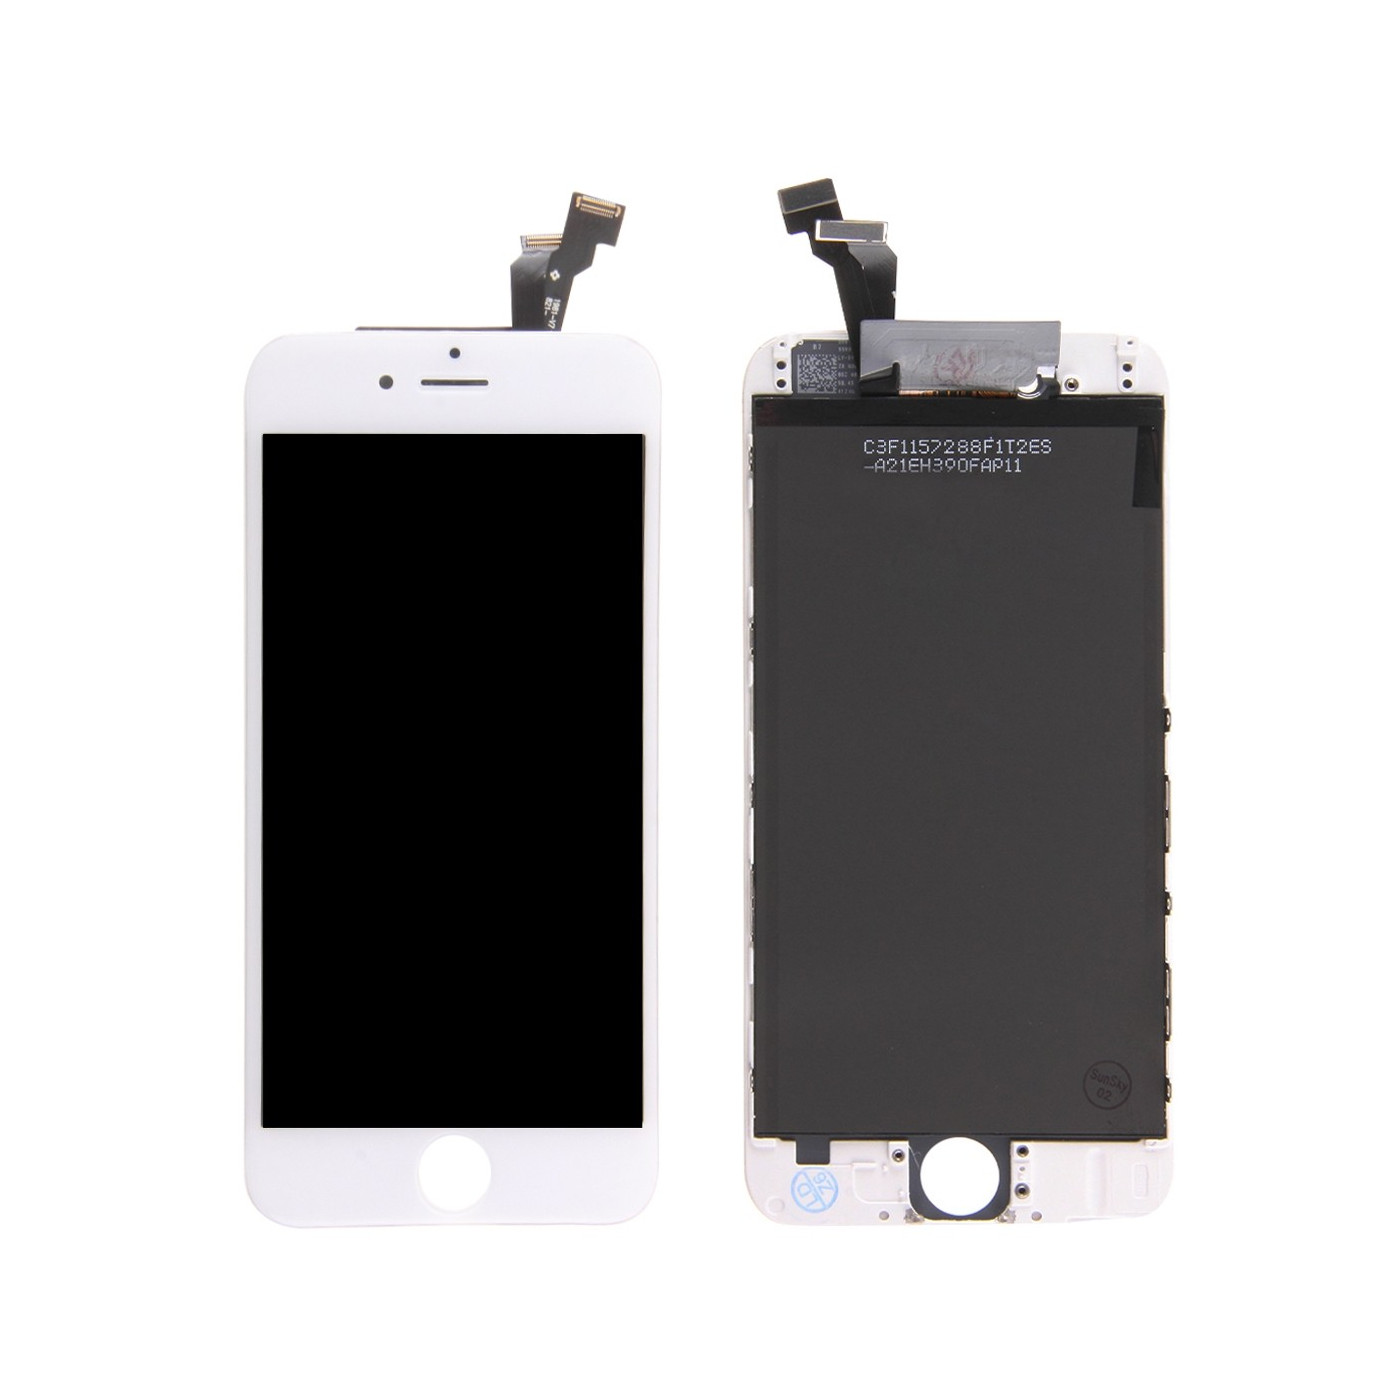 Touch screen display LCD per apple iphone 6 bianco frame vetro retina